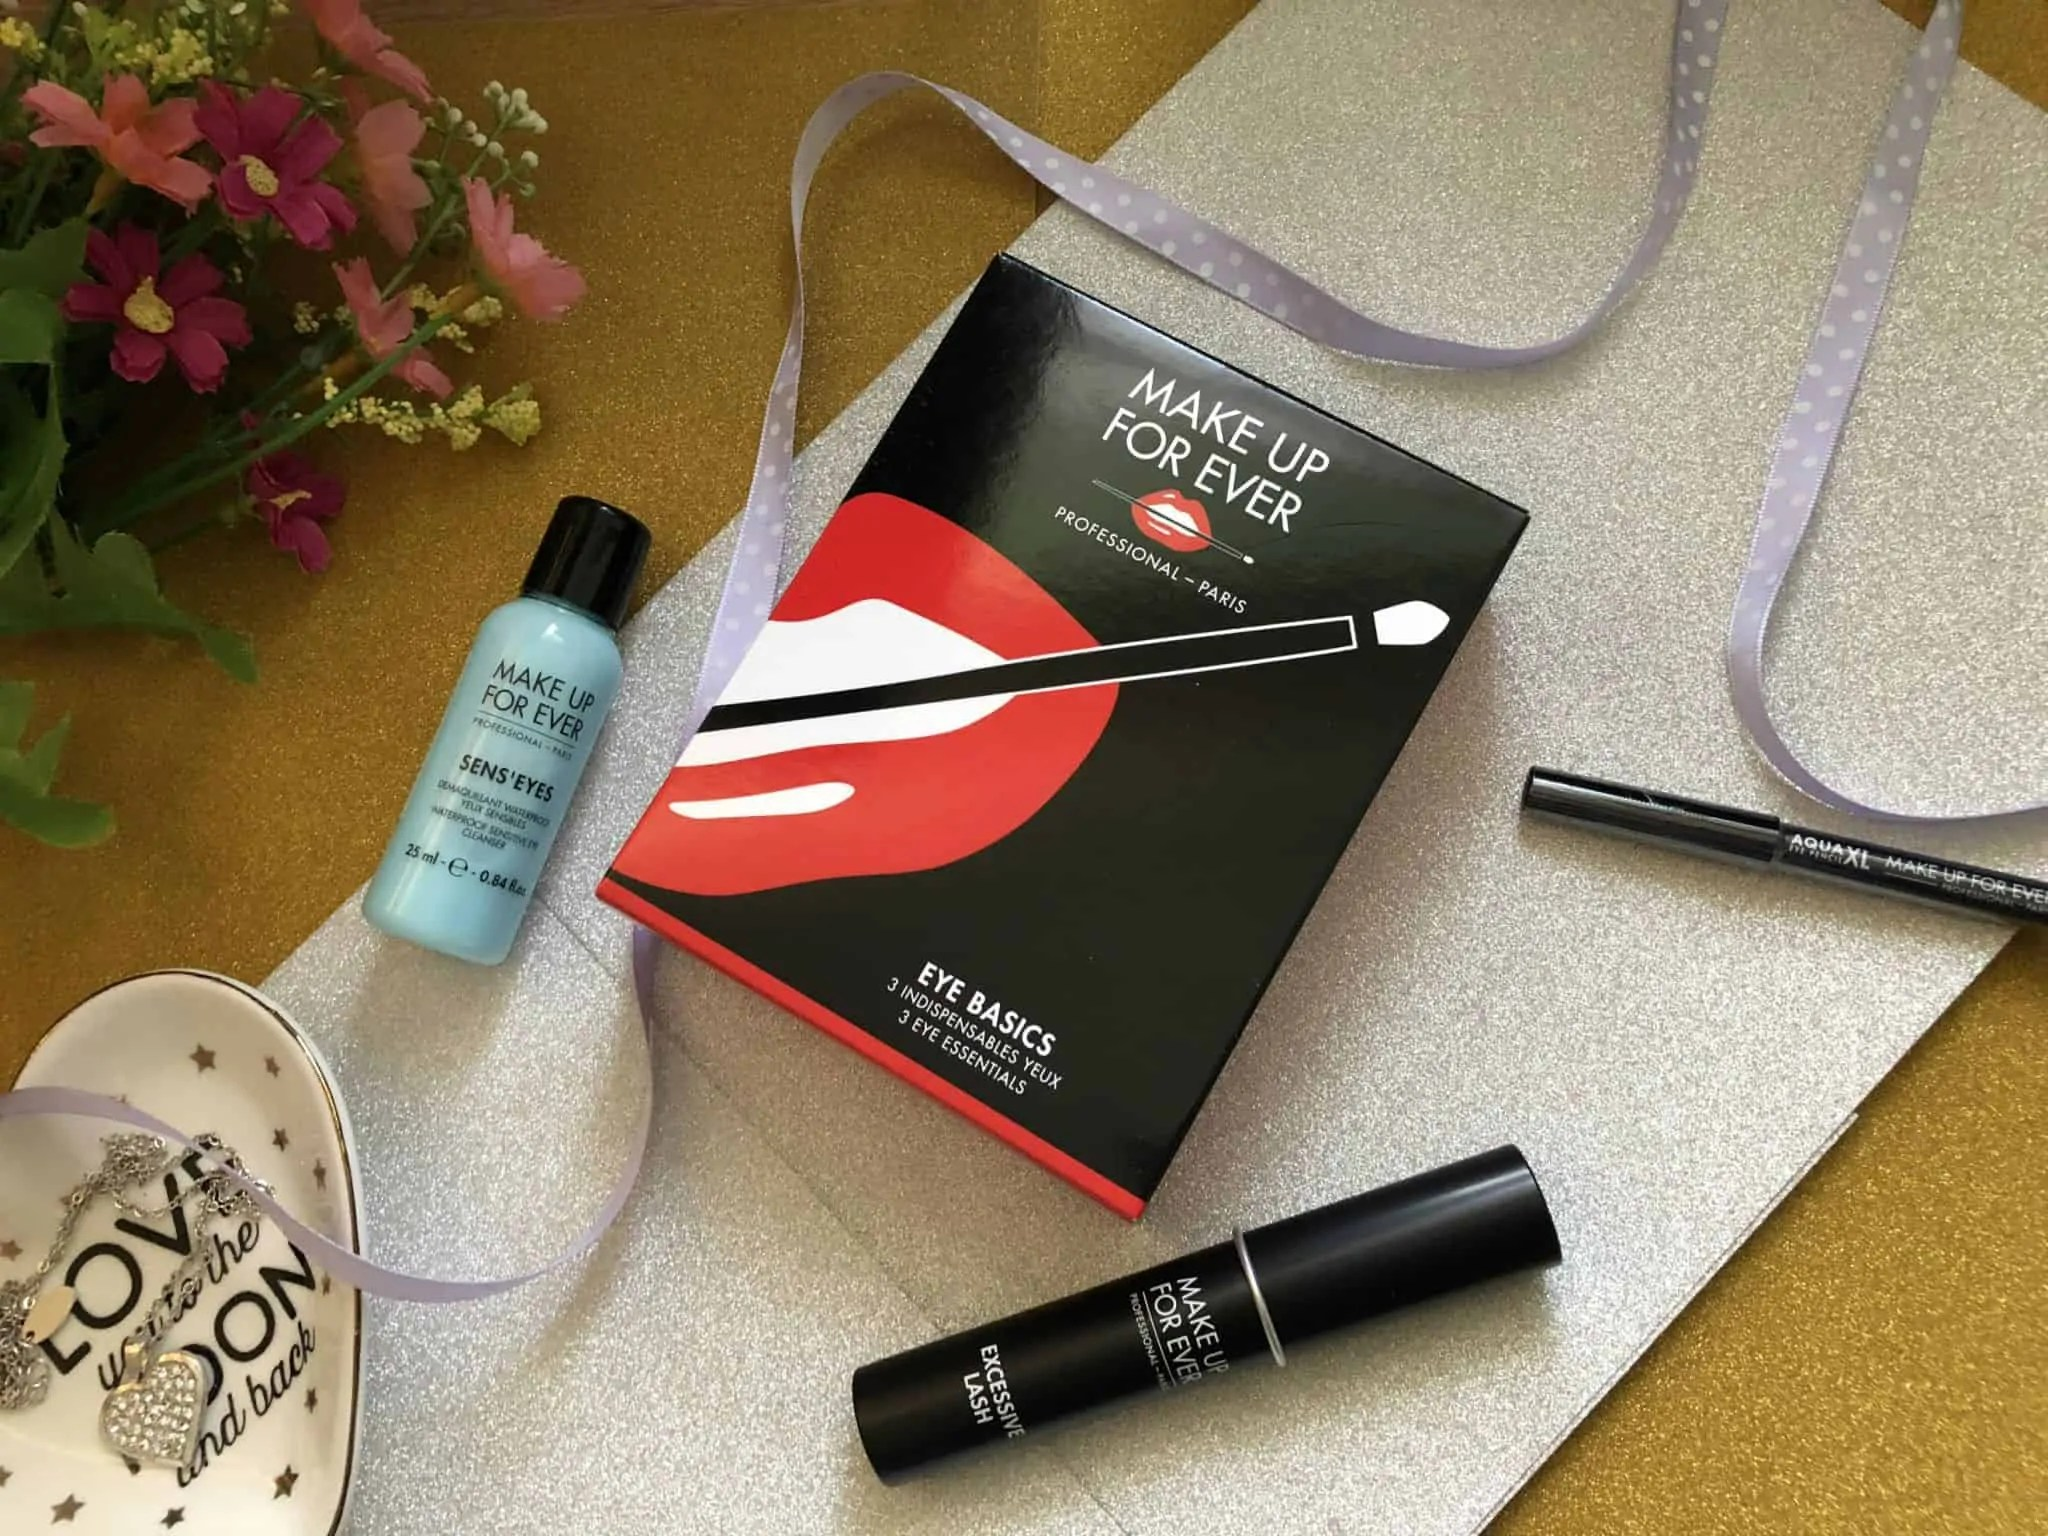 tips on how to care for your eyes and the chance to win a makeup forever eye basics set